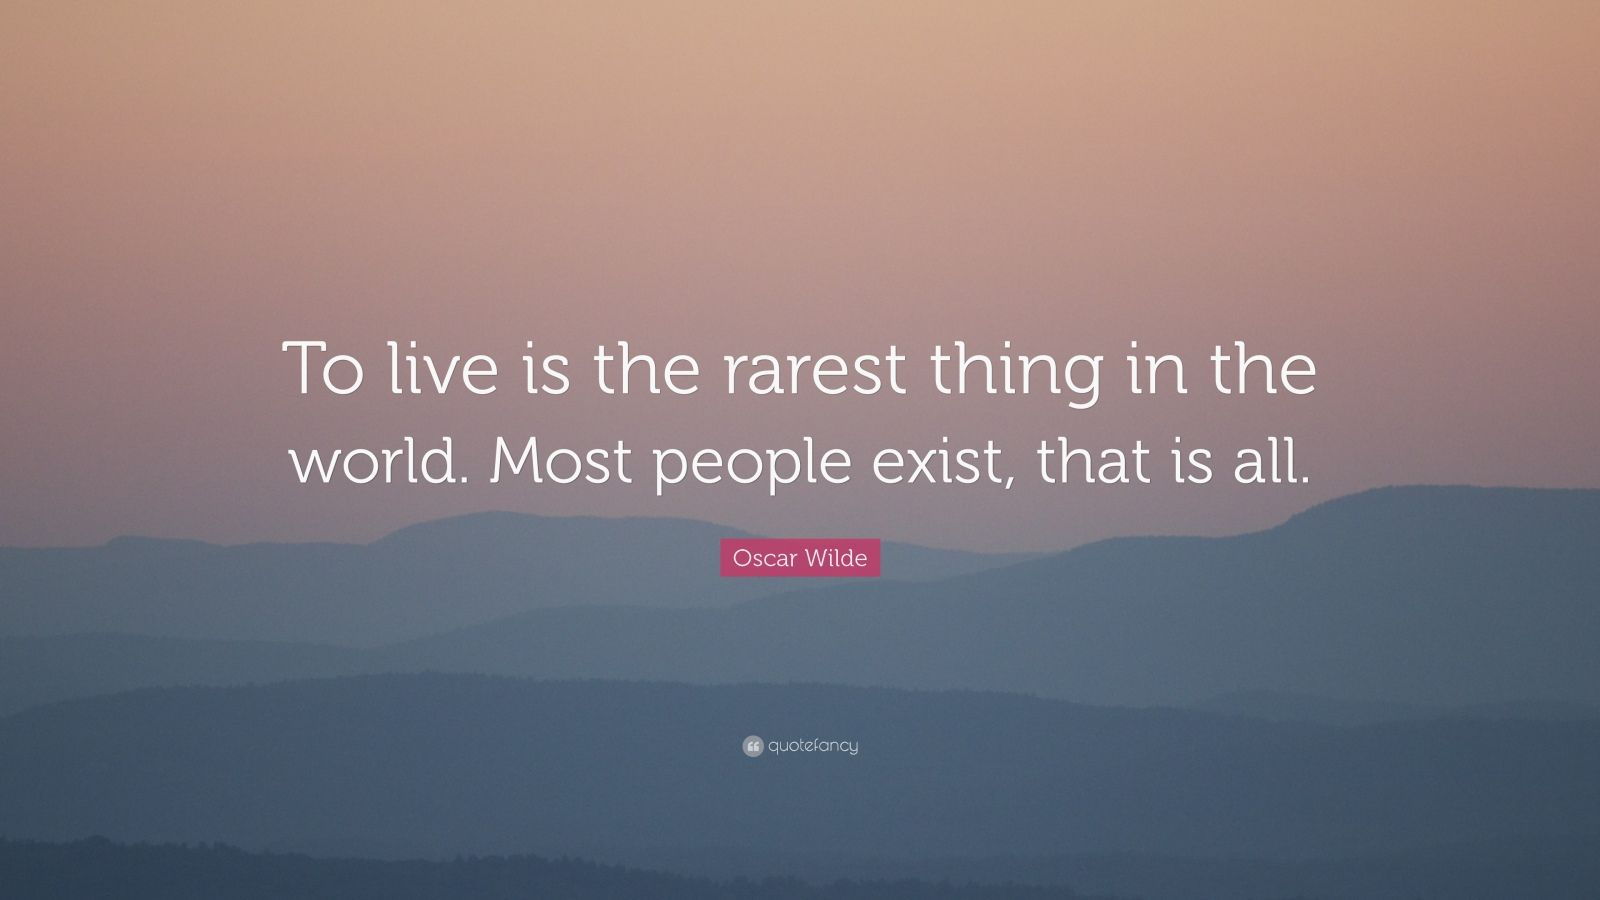 to live is the rarest thing in the world most people exist that is all To live is the rarest thing in the world most peo best instagram web viewer to live is the rarest thing in the world most people exist, that's all.